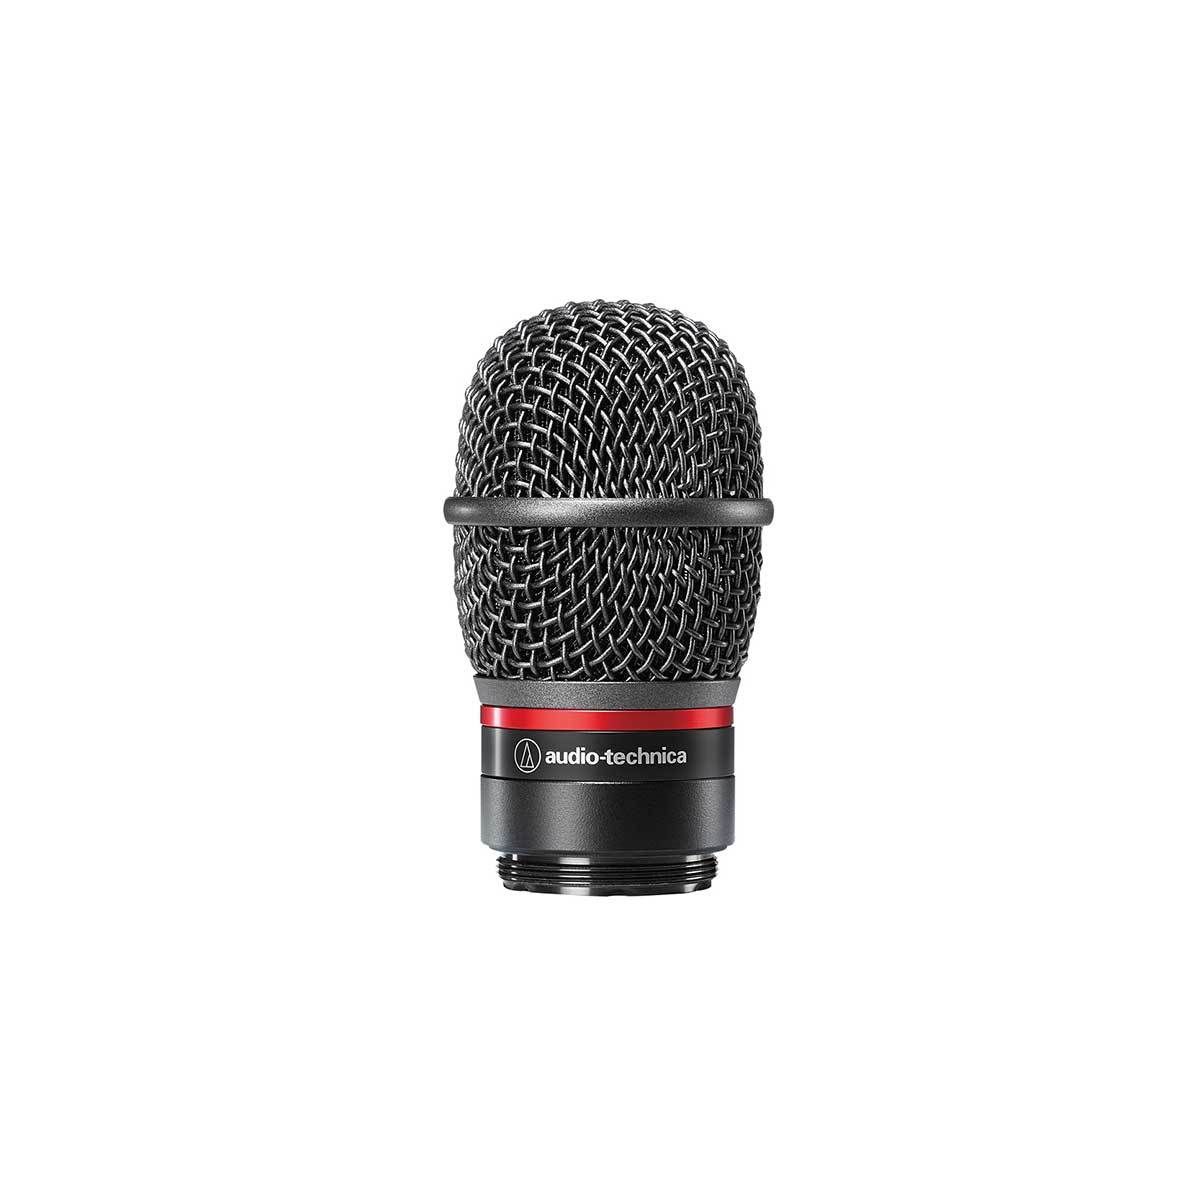 Wireless Systems - Audio-Technica ATW-C6100 Interchangeable Hypercardioid Dynamic Microphone Capsule